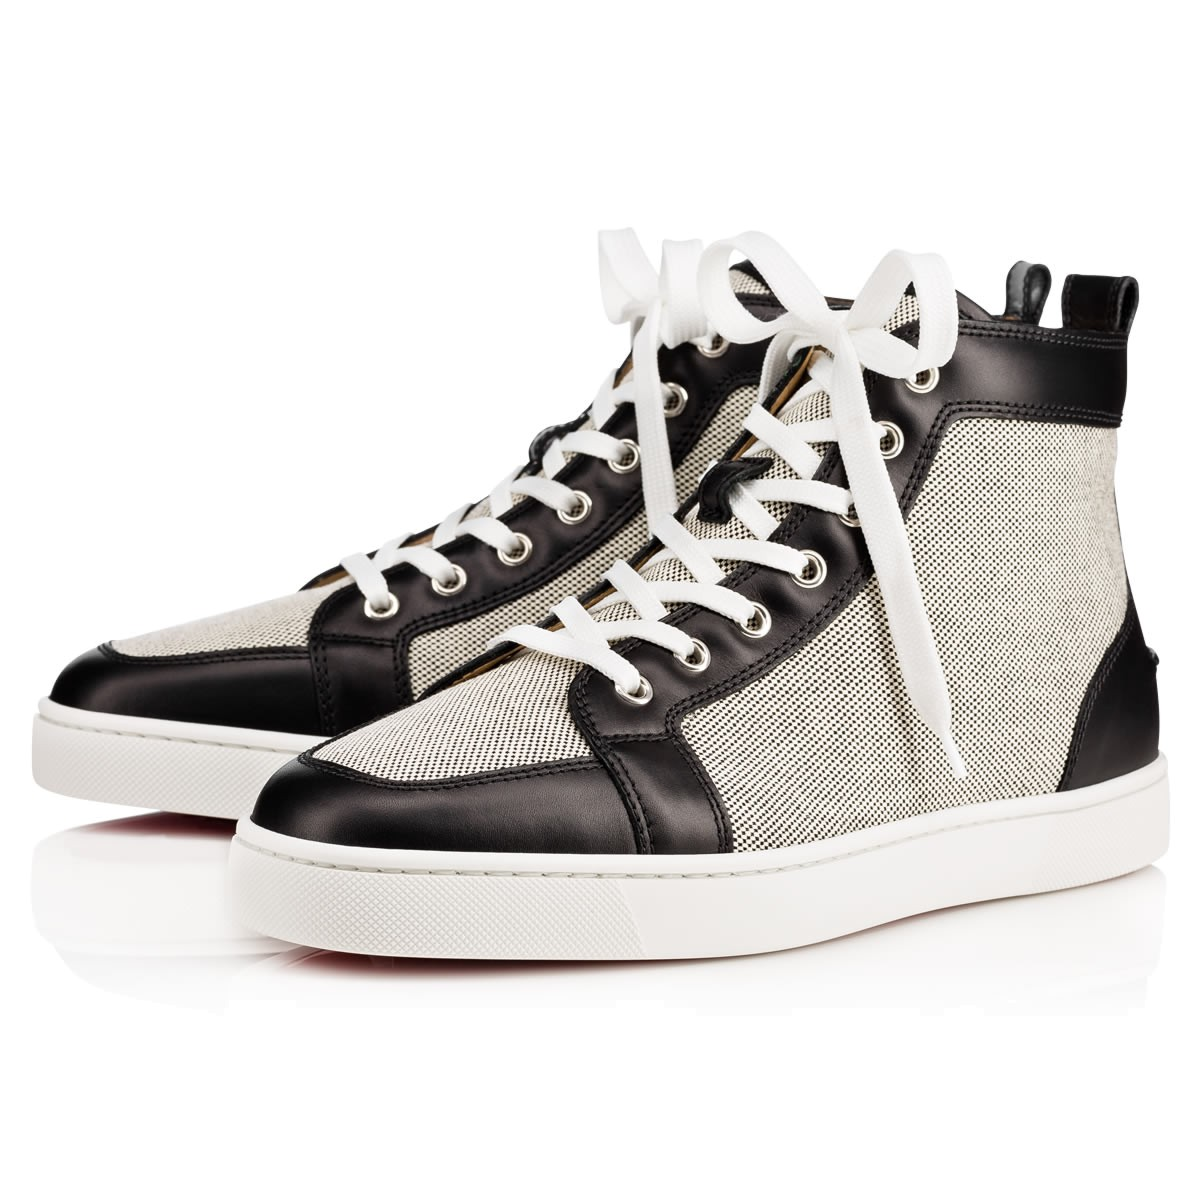 Mens Rantus Flat Leather & Cotton Sneakers Christian Louboutin